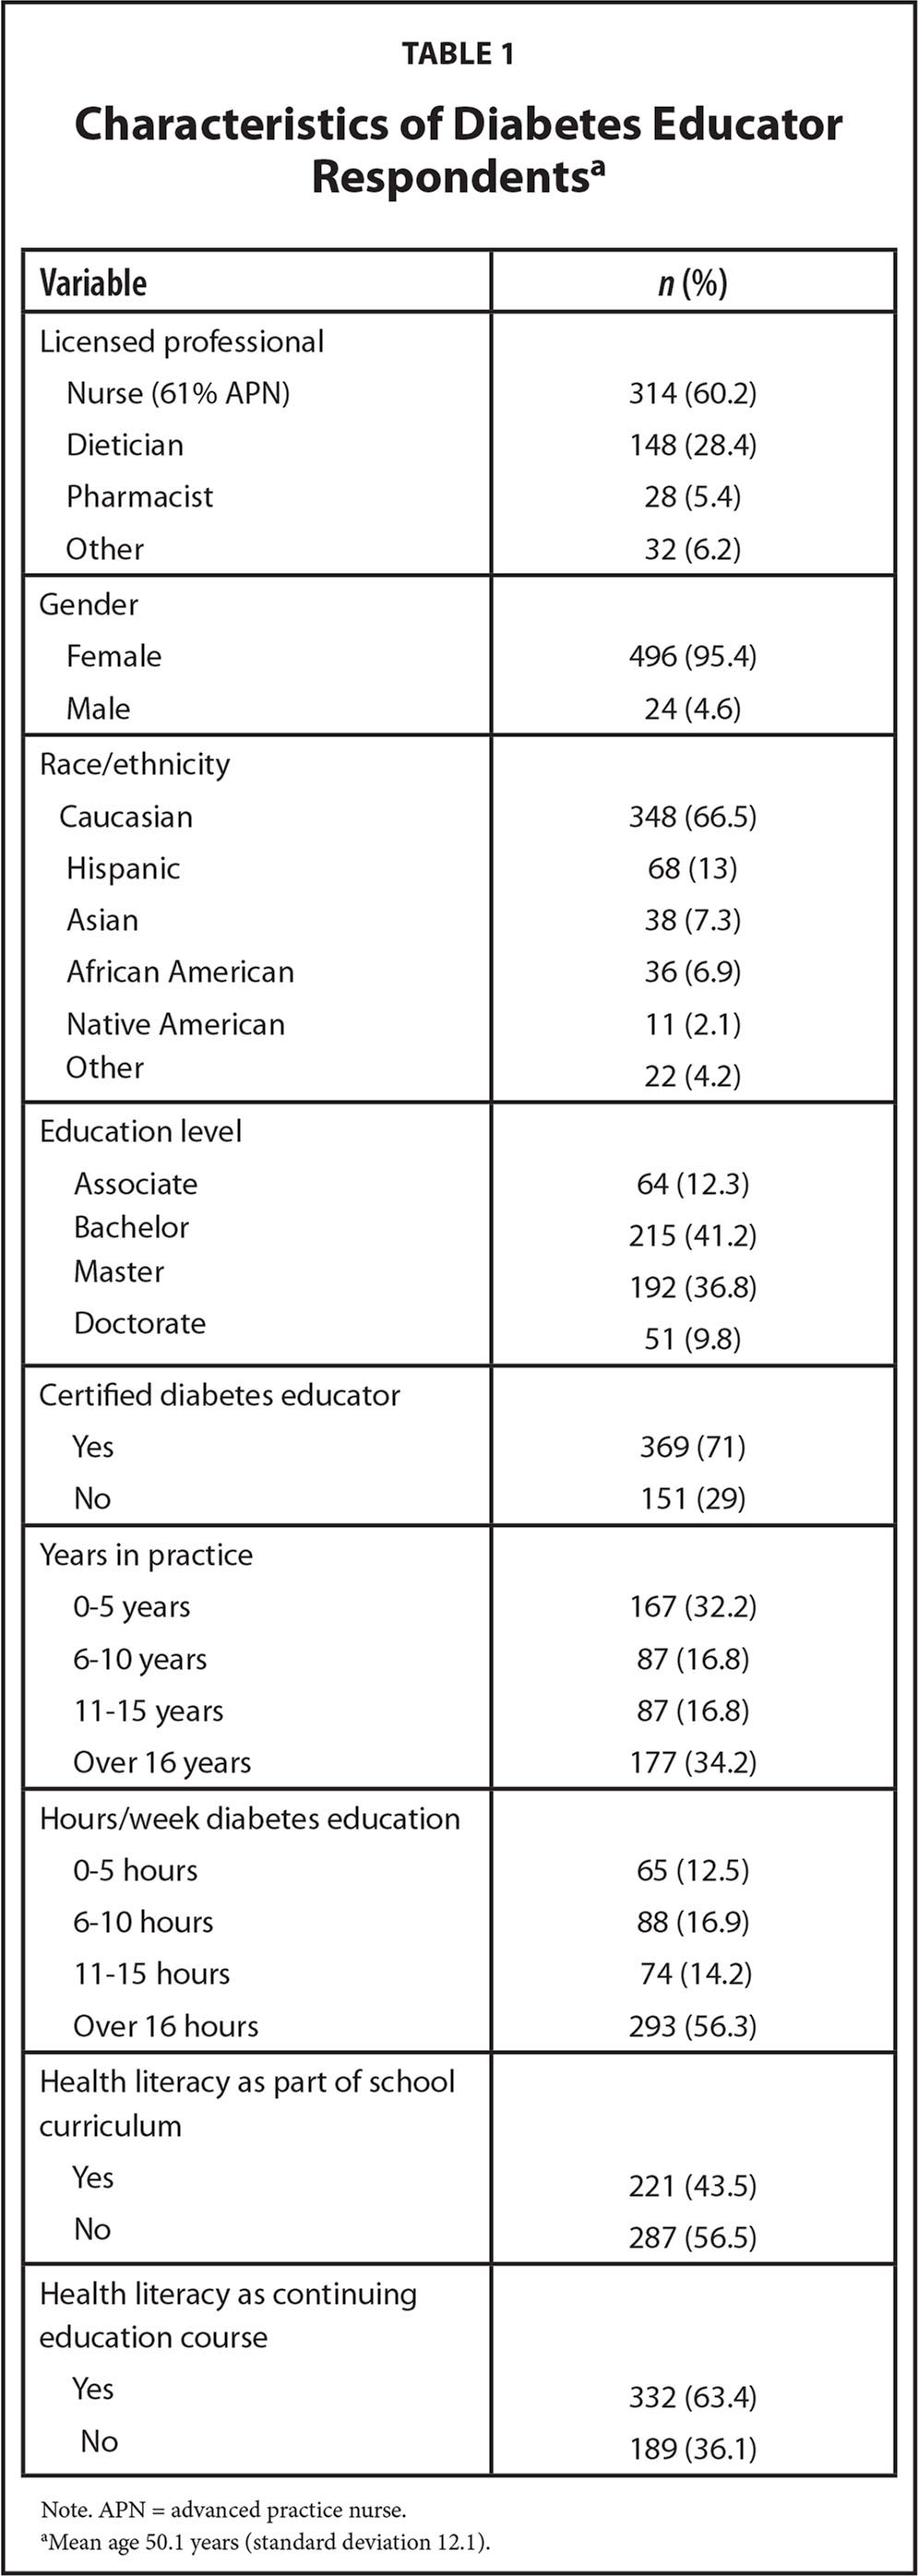 Characteristics of Diabetes Educator Respondentsa